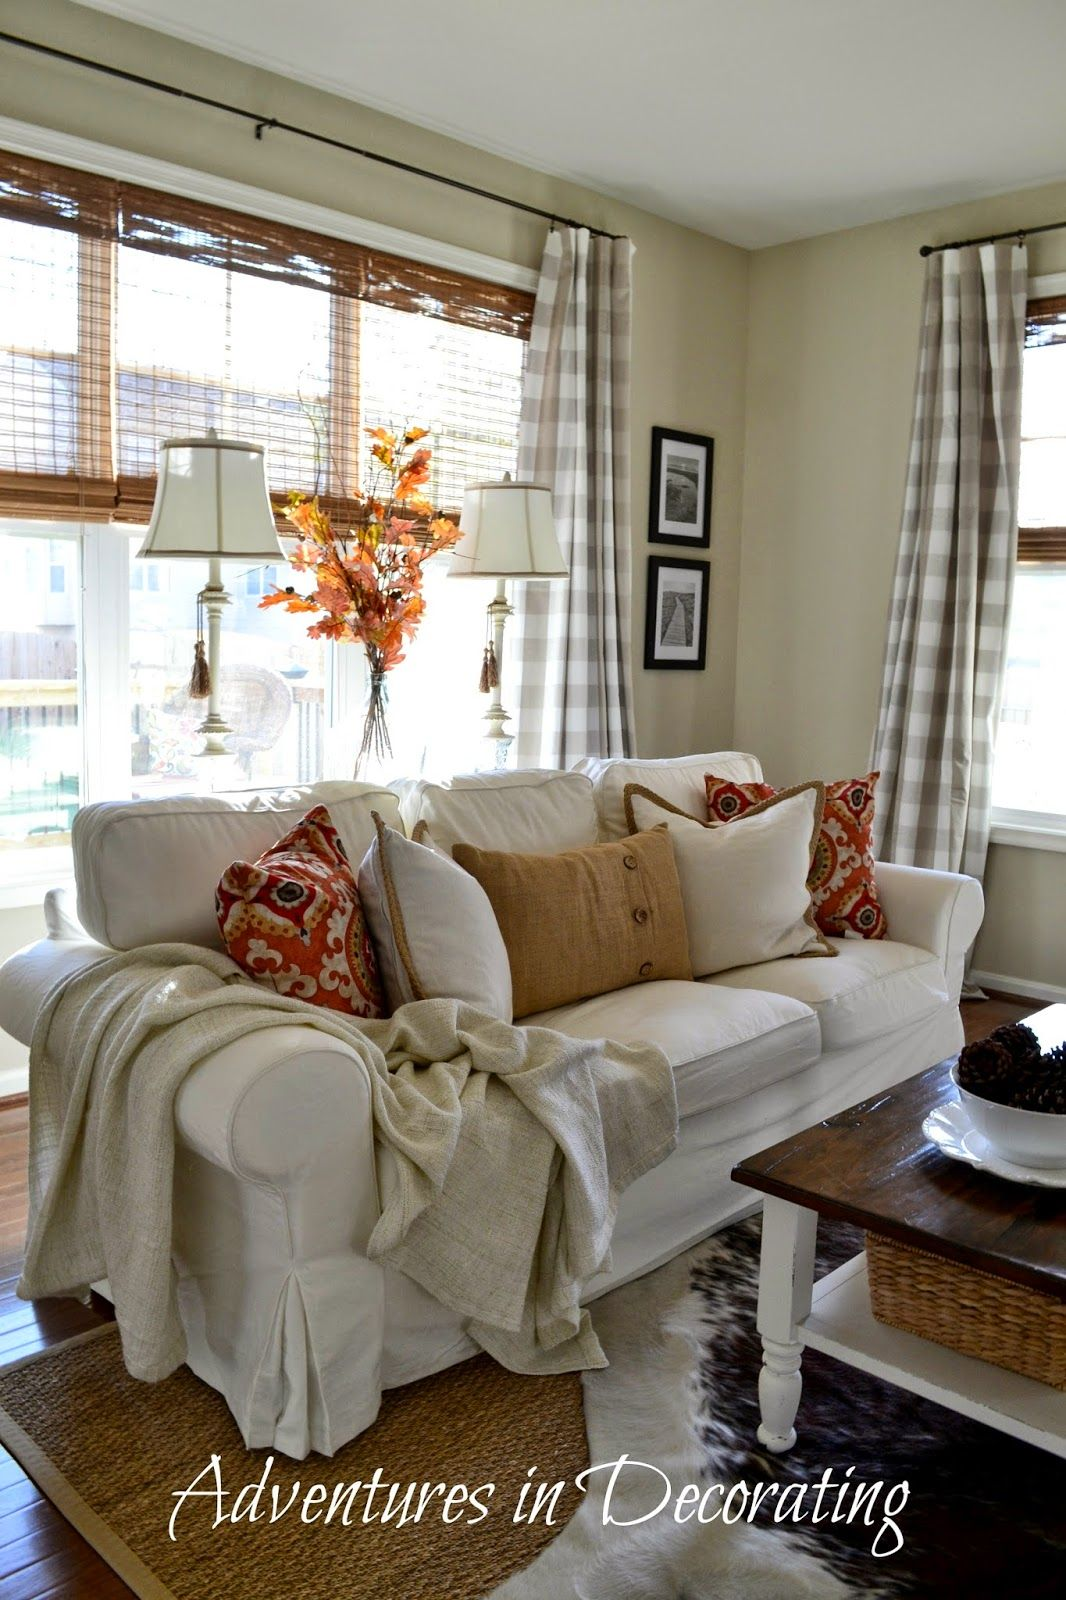 Adventures in Decorating Our New Great Room  neutrals with fall colors work well together